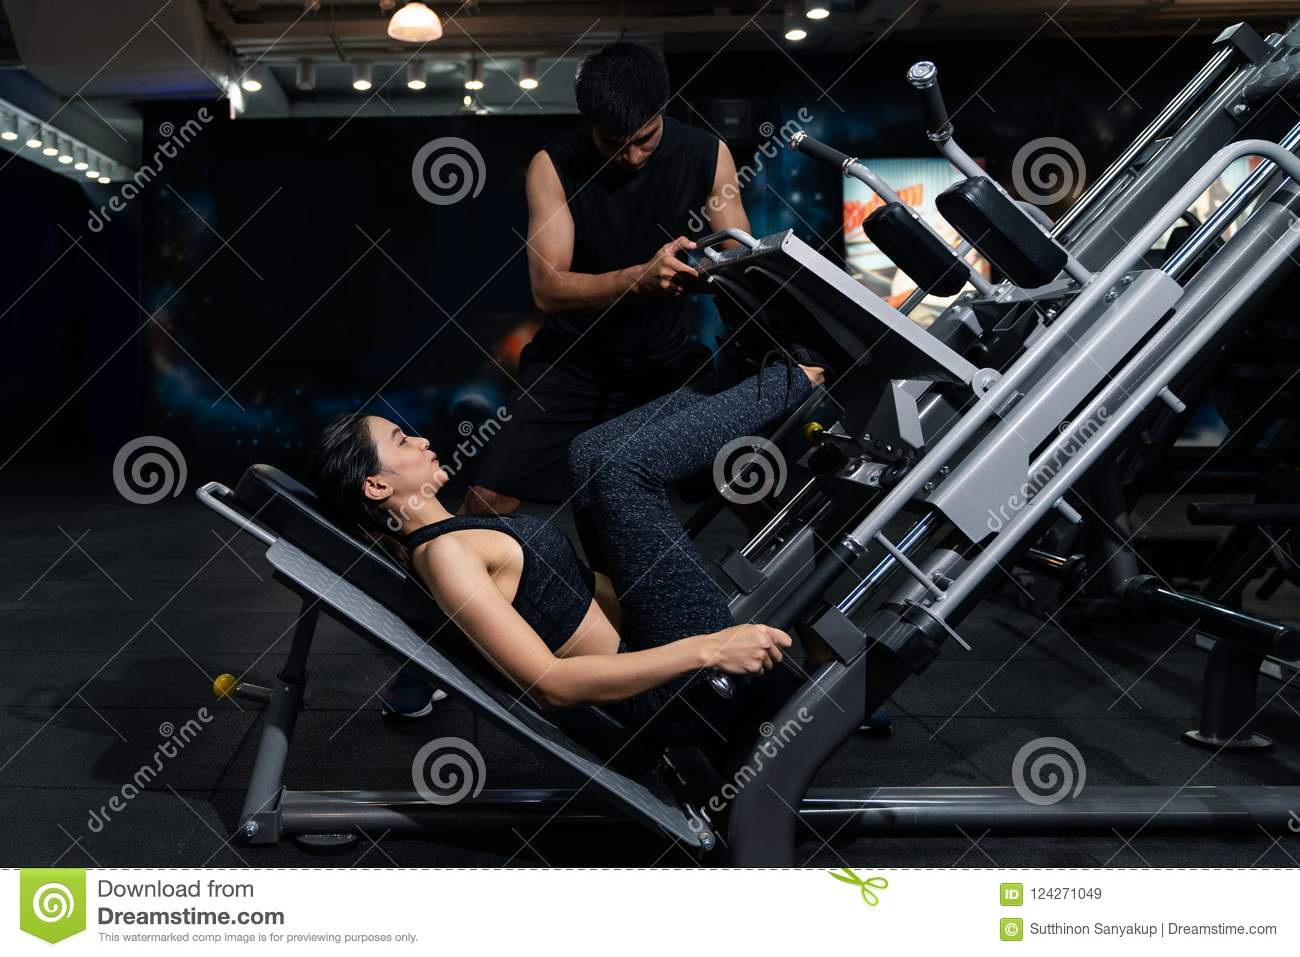 Fit woman working out with trainer at the gym, Woman doing muscle training at the gym. Athlete working out at the gym by pulling w